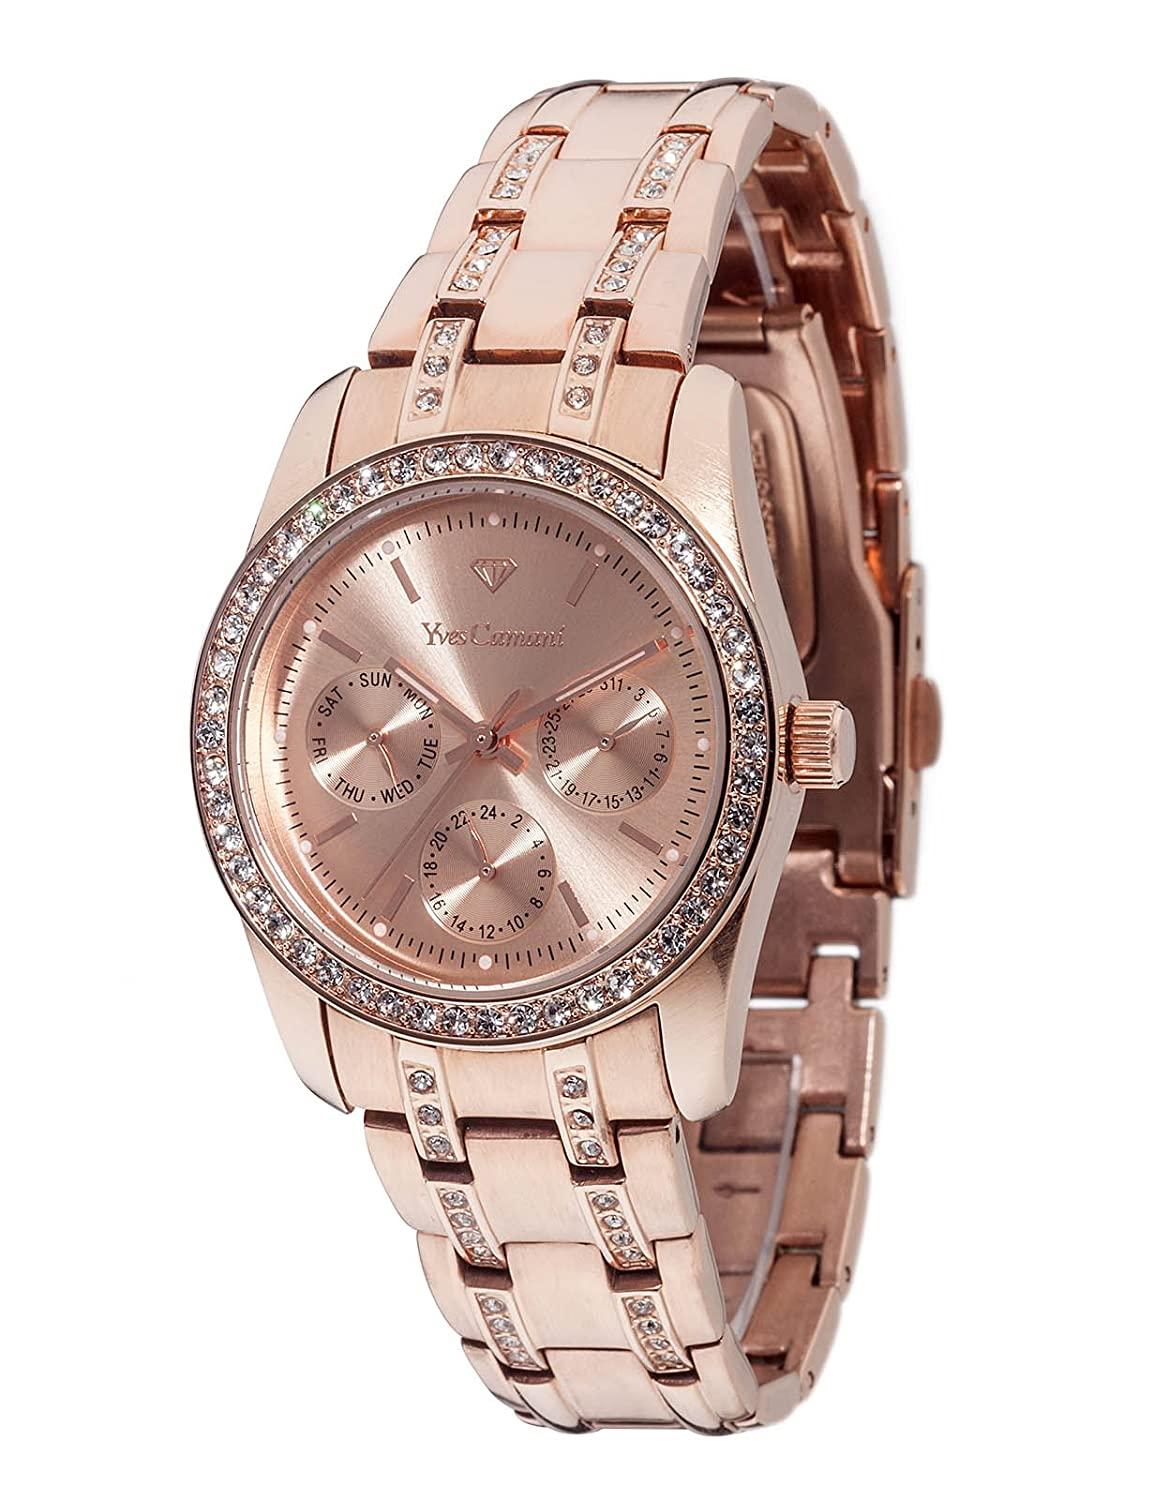 Yves Camani Women s Watch with Crystal Accented Stainless Steel Band and Day Date Display